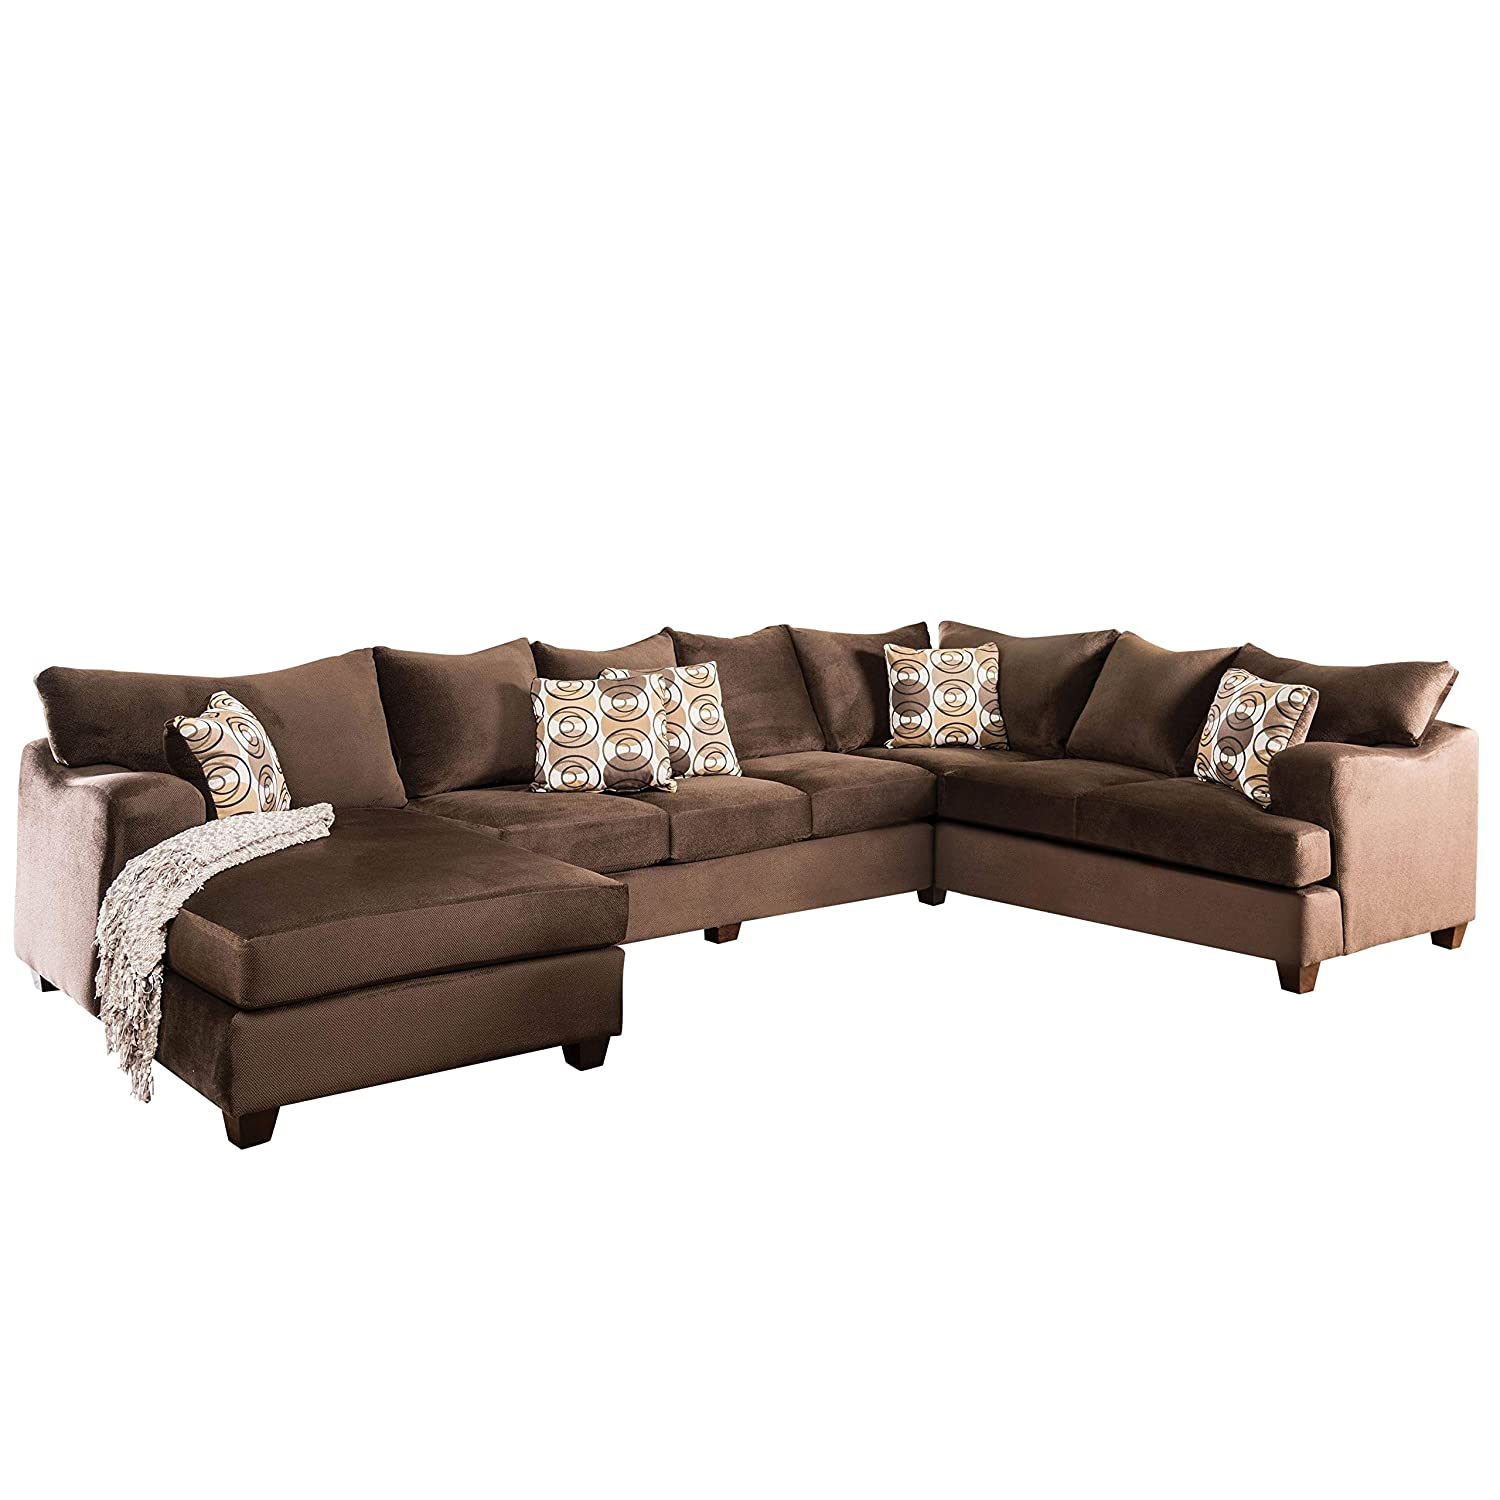 Amazon.com: Furniture of America Nisha I Modern Chocolate ...